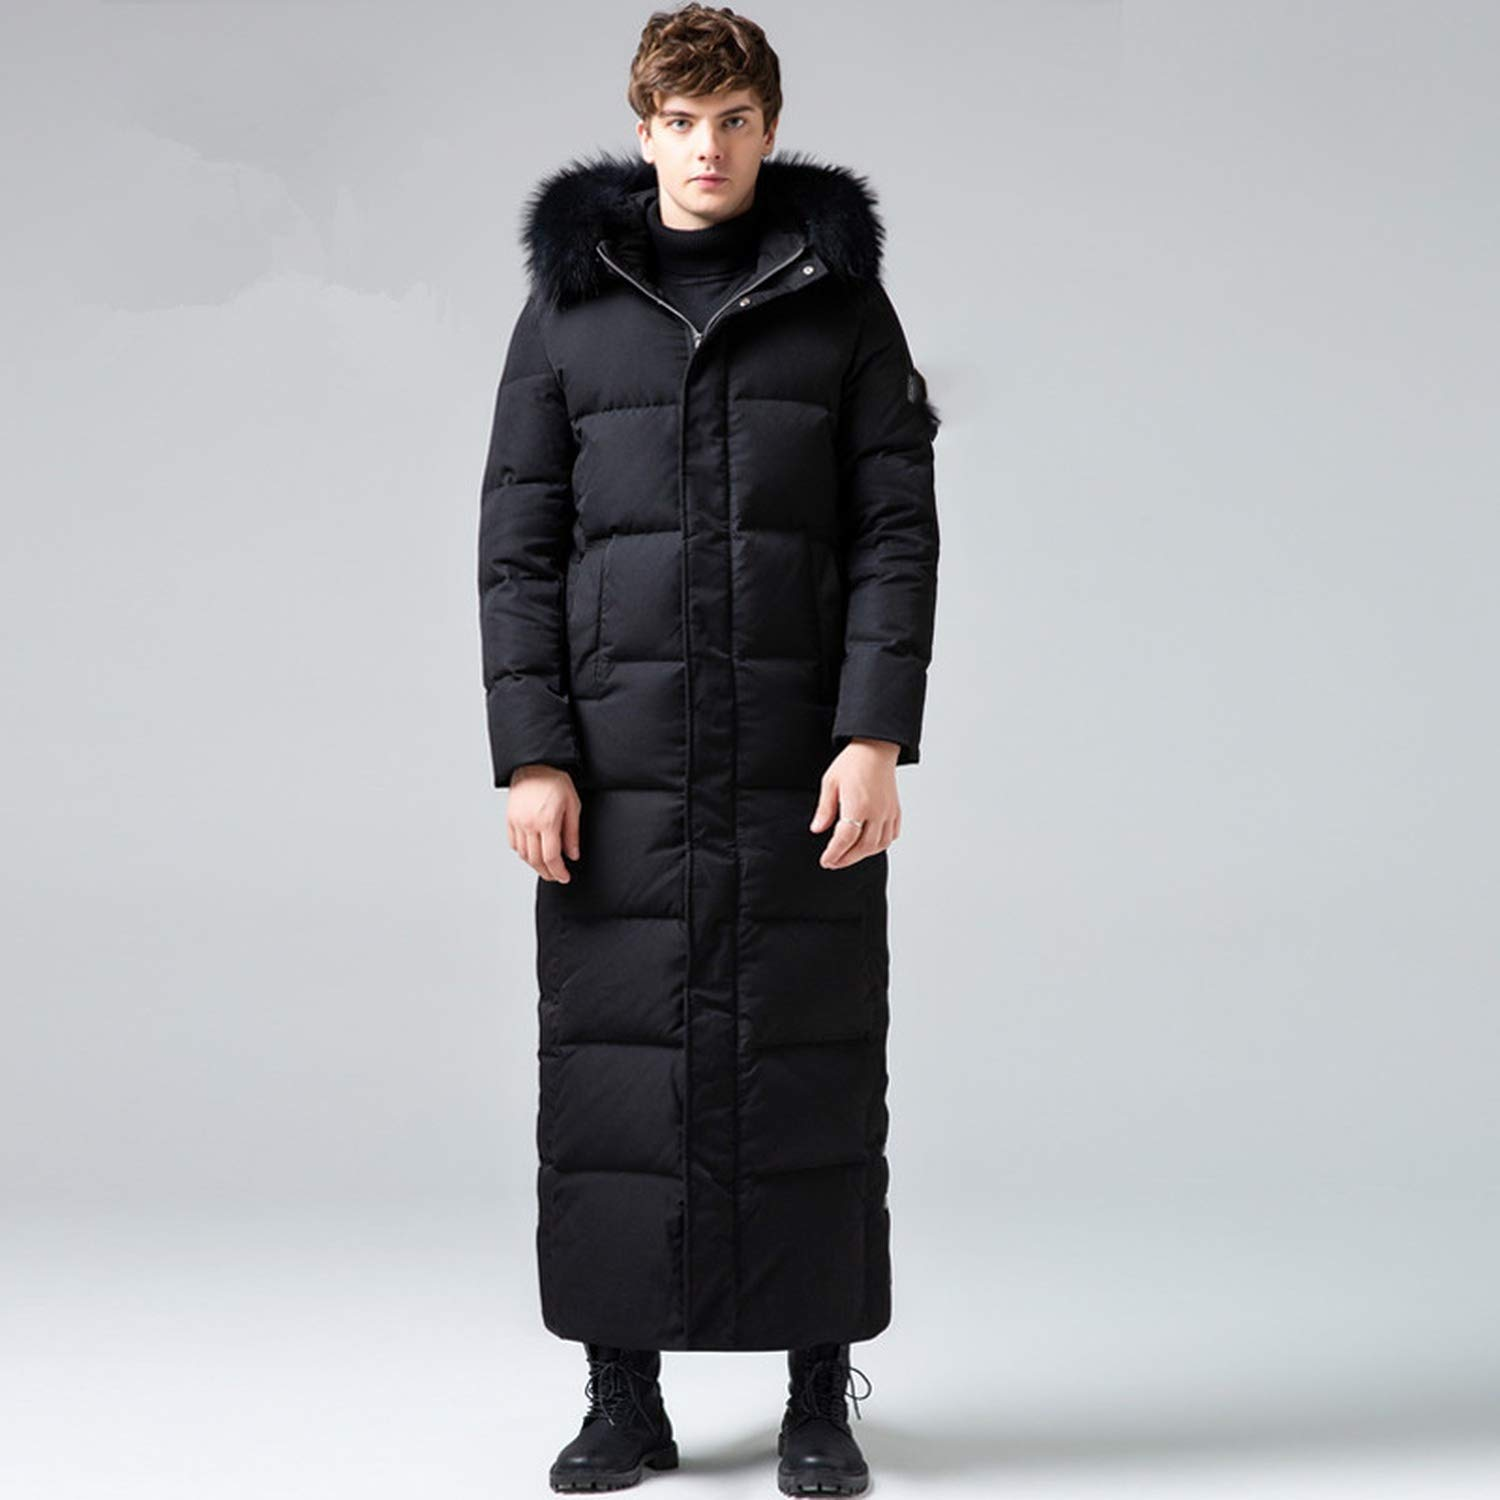 Amazon.com: Fresh -house The Item was Updated,Winter Down Jacket Men Long Coat Men R-accoon F-ur Collar Plus Size Warm Mens Jackets: Clothing